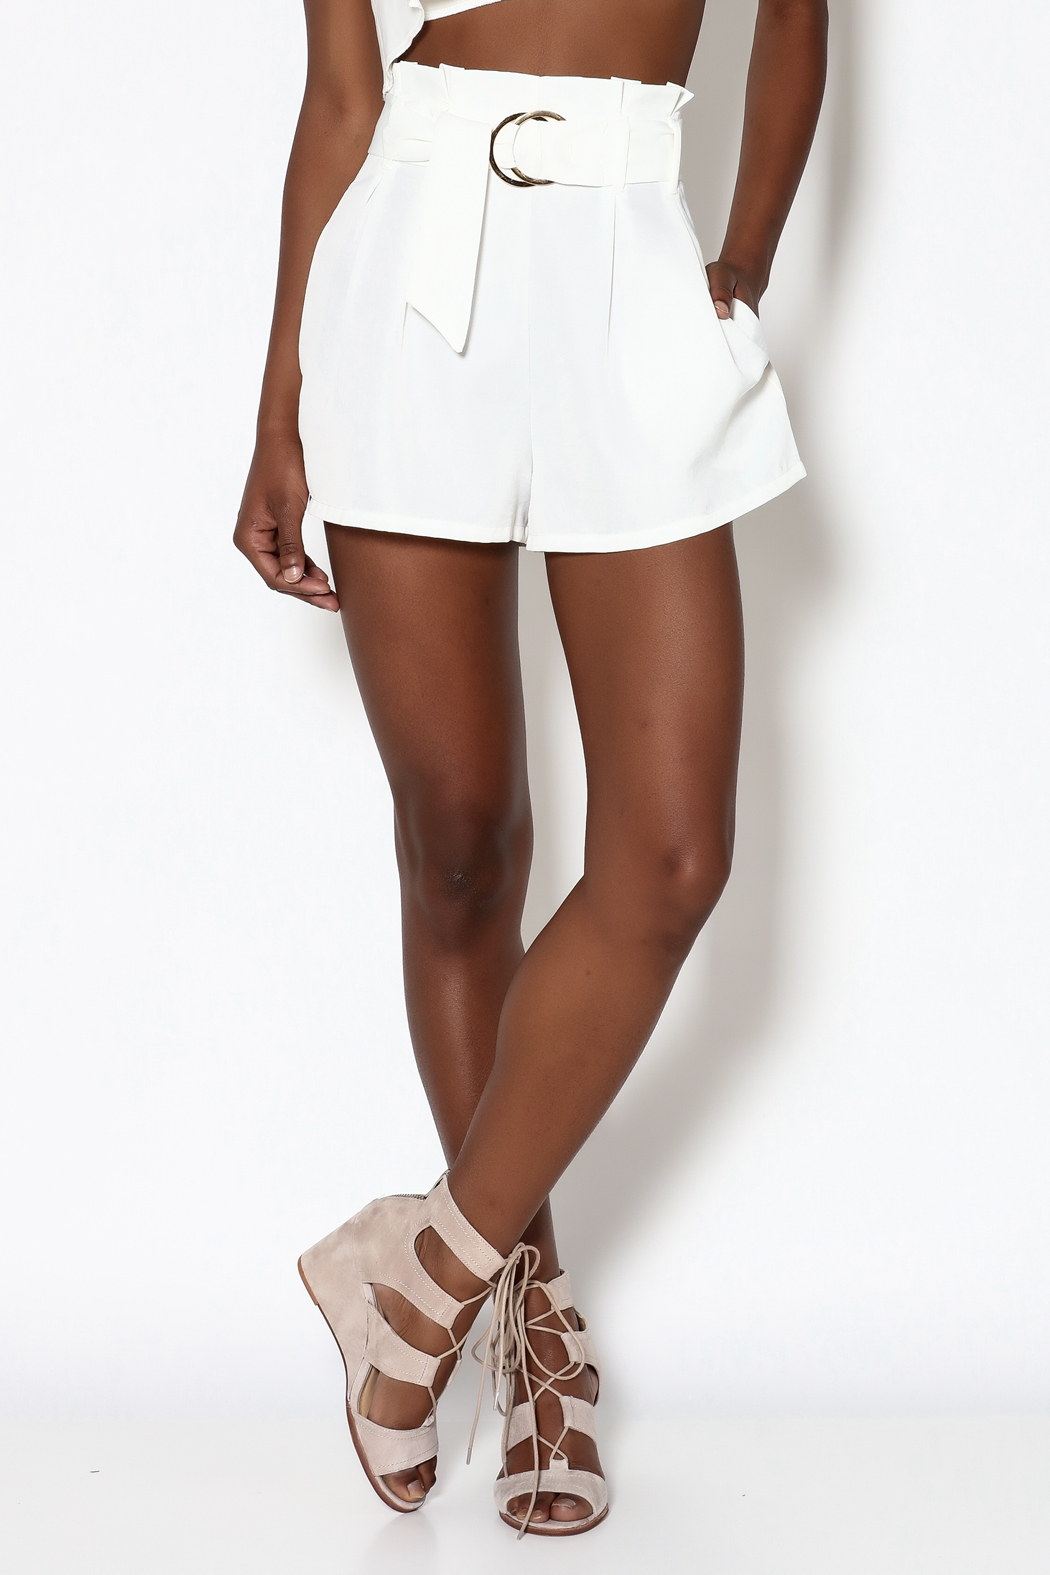 Jealous Tomato White High-Waist Shorts from Manhattan by Dor L'Dor ...